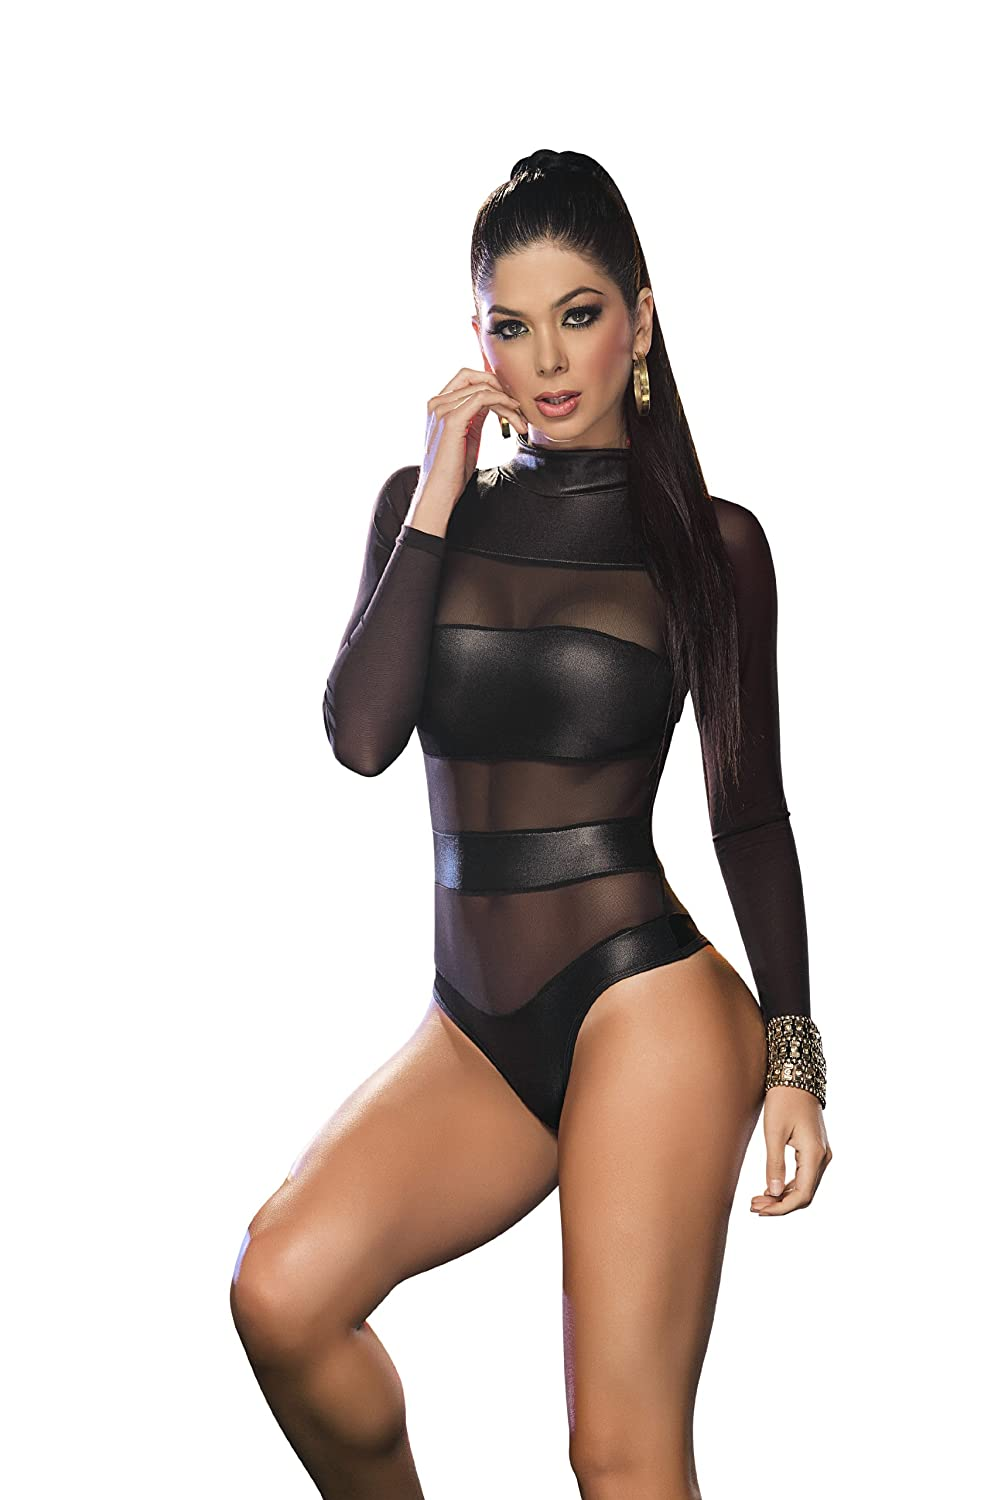 Espiral Women's Mesh Banded Bodysuit, Black, Medium 2217